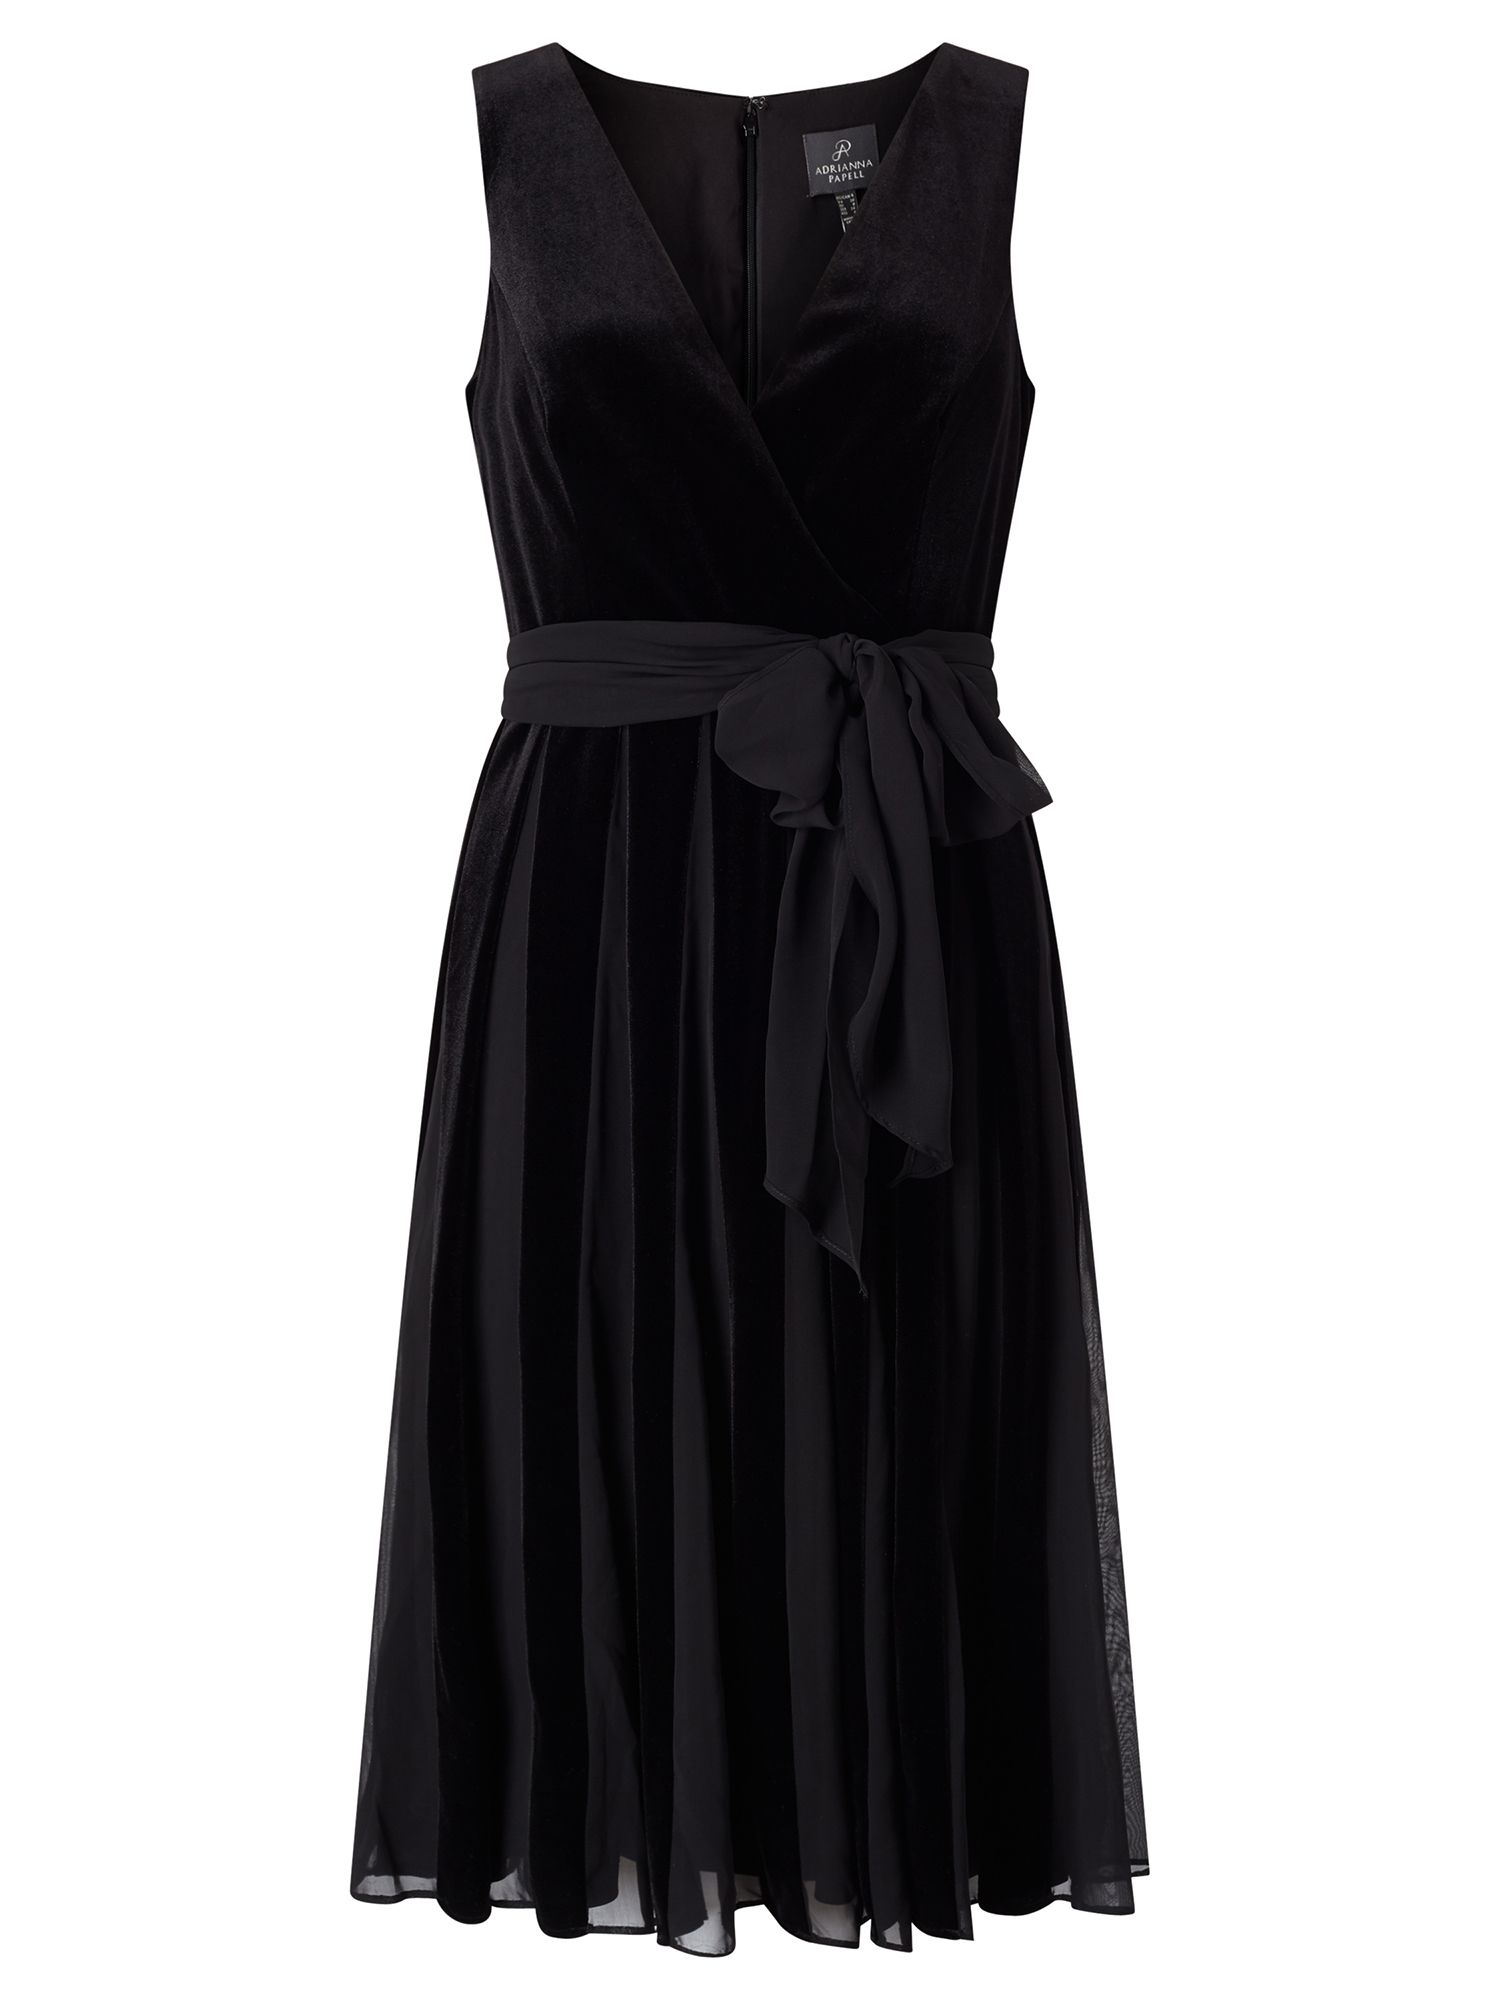 Adrianna Papell Velvet Cocktail Dress, Black